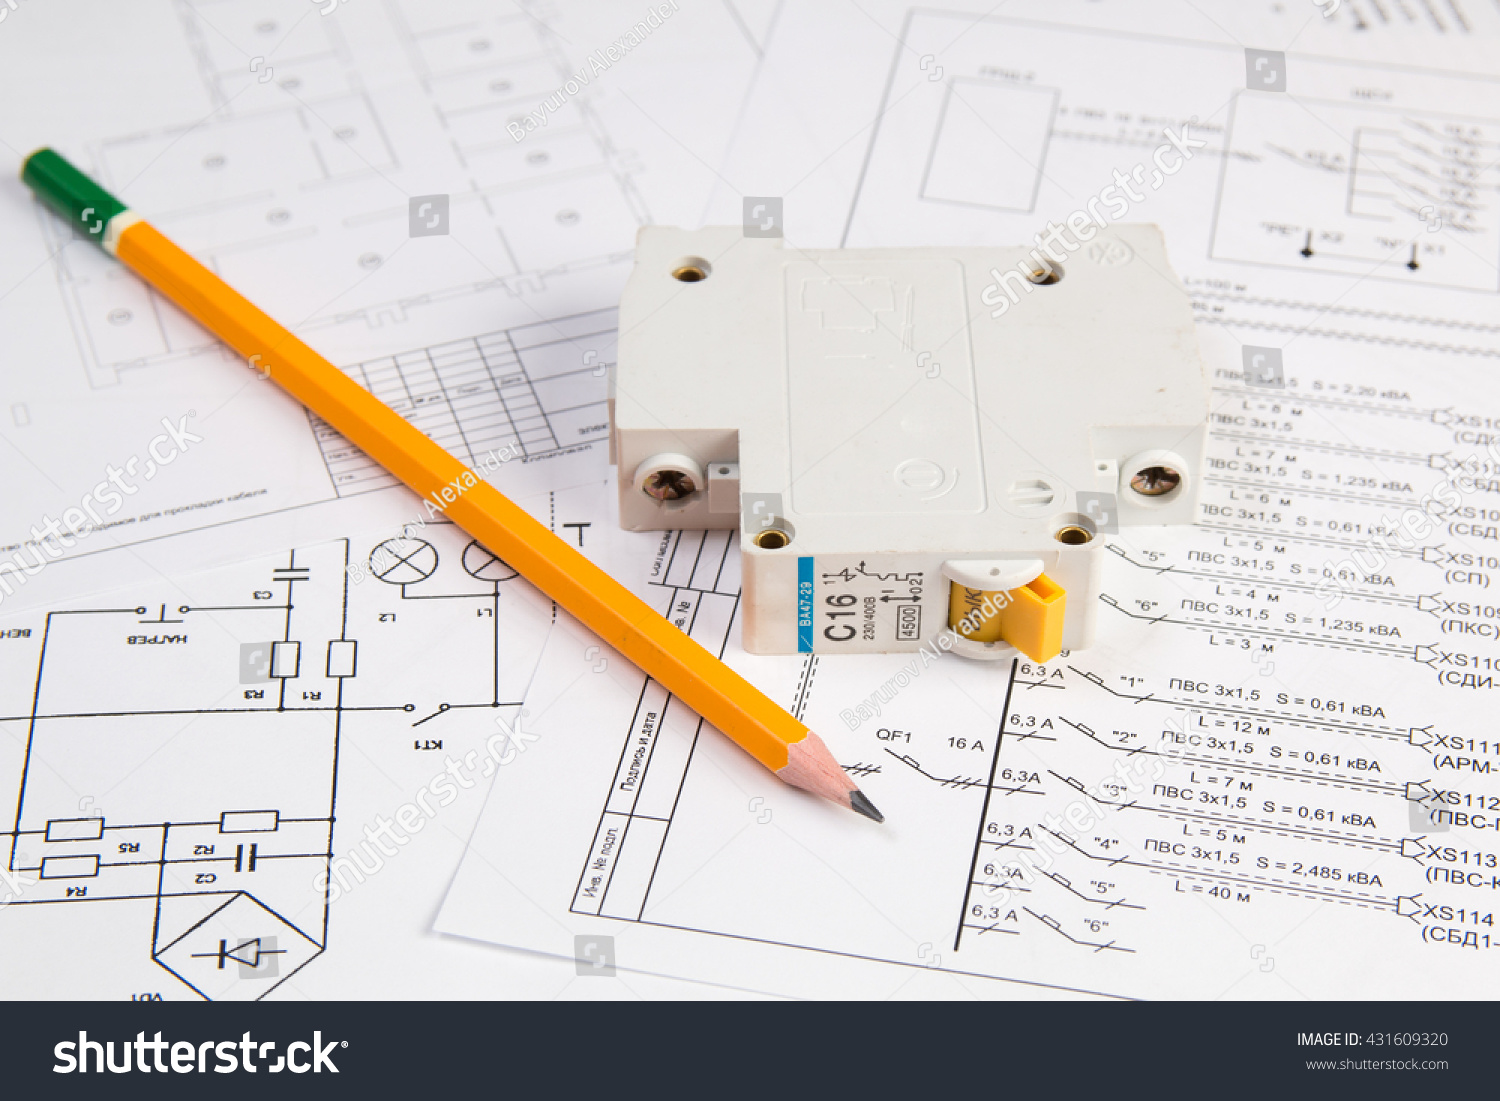 Science Technology Electronics Electrical Engineering Drawings Stock Electric Circuit Drawing And Printing With Pencil Breaker